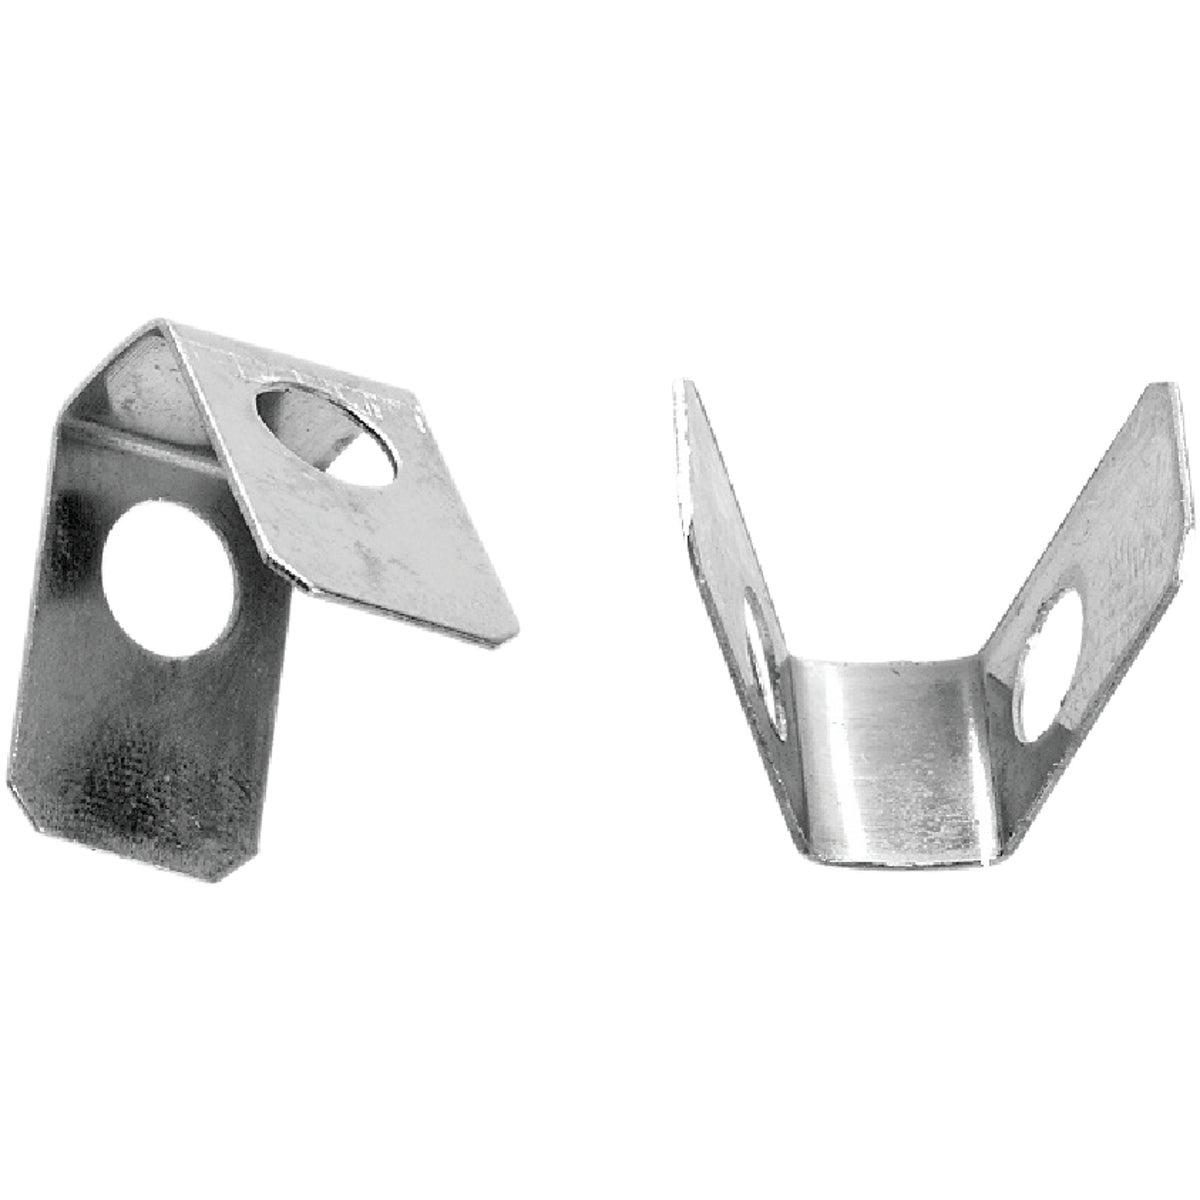 "1/4"" CLEVIS CLIP - 34808B by Danco Perfect Match"